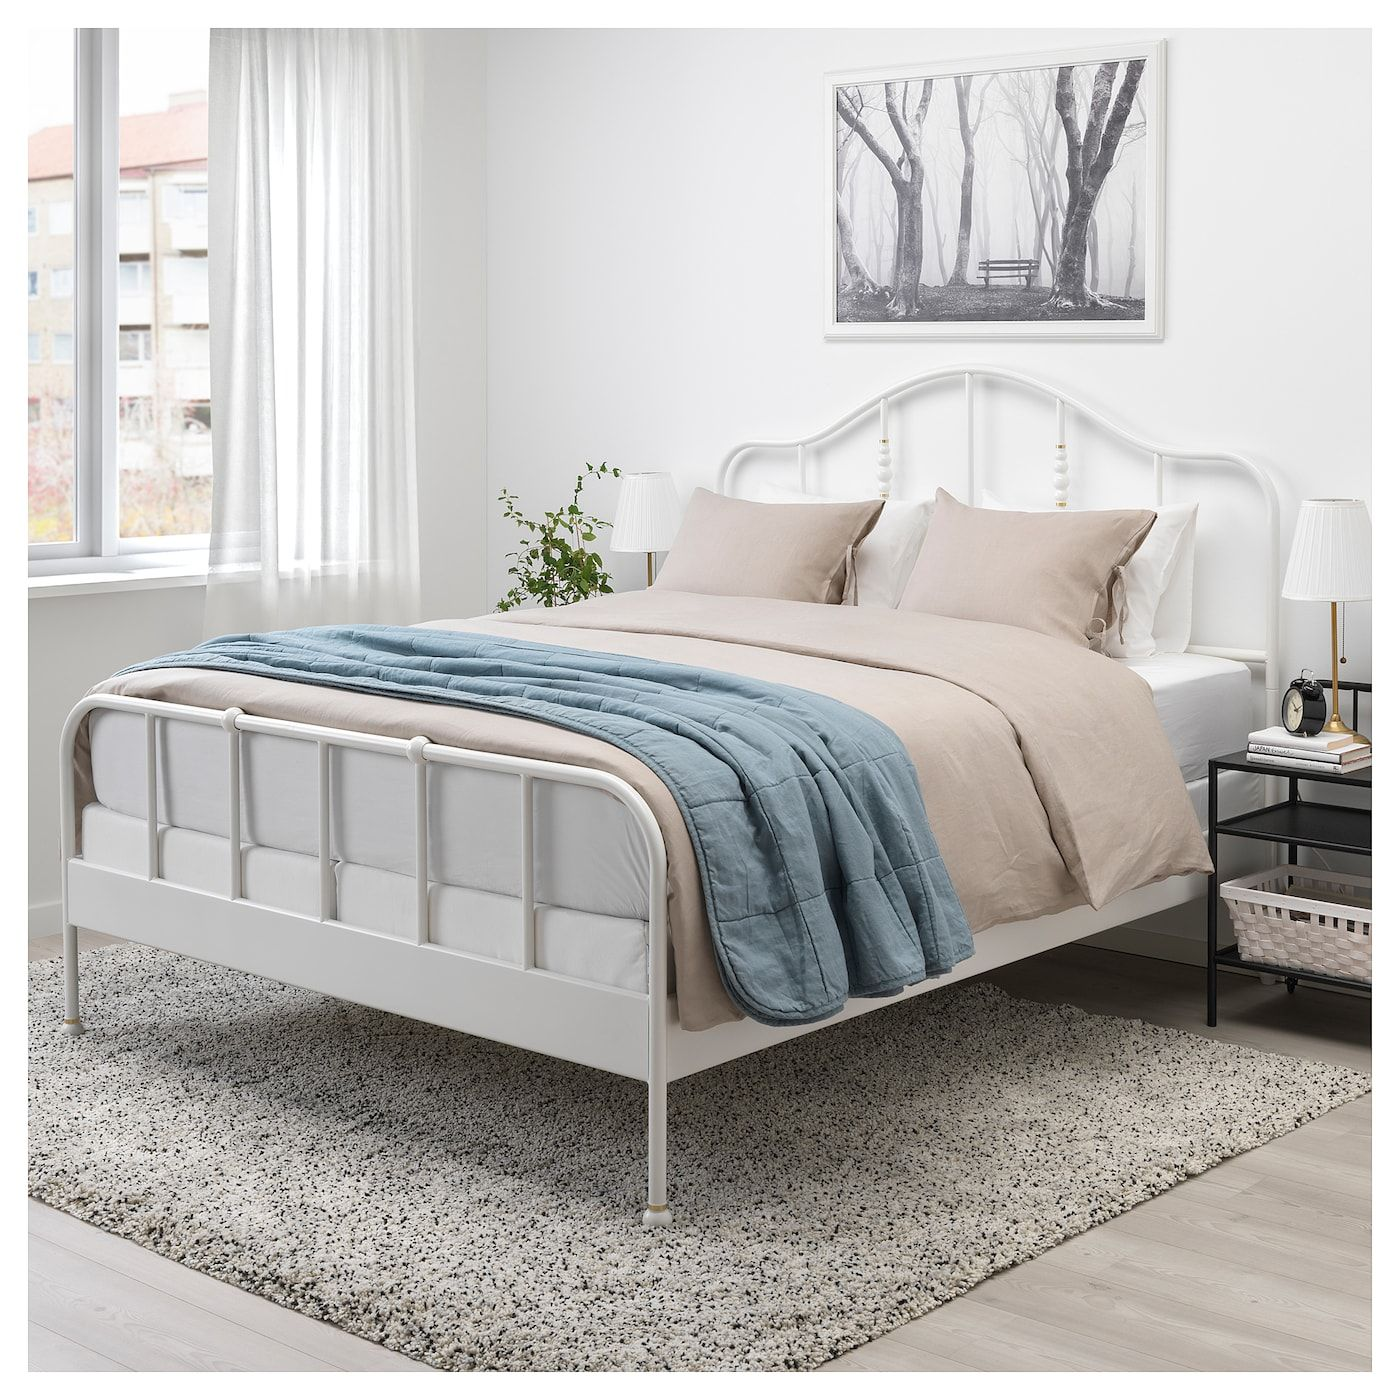 Sagstua Bed Frame White Espevar Queen Bed Frame White Bed